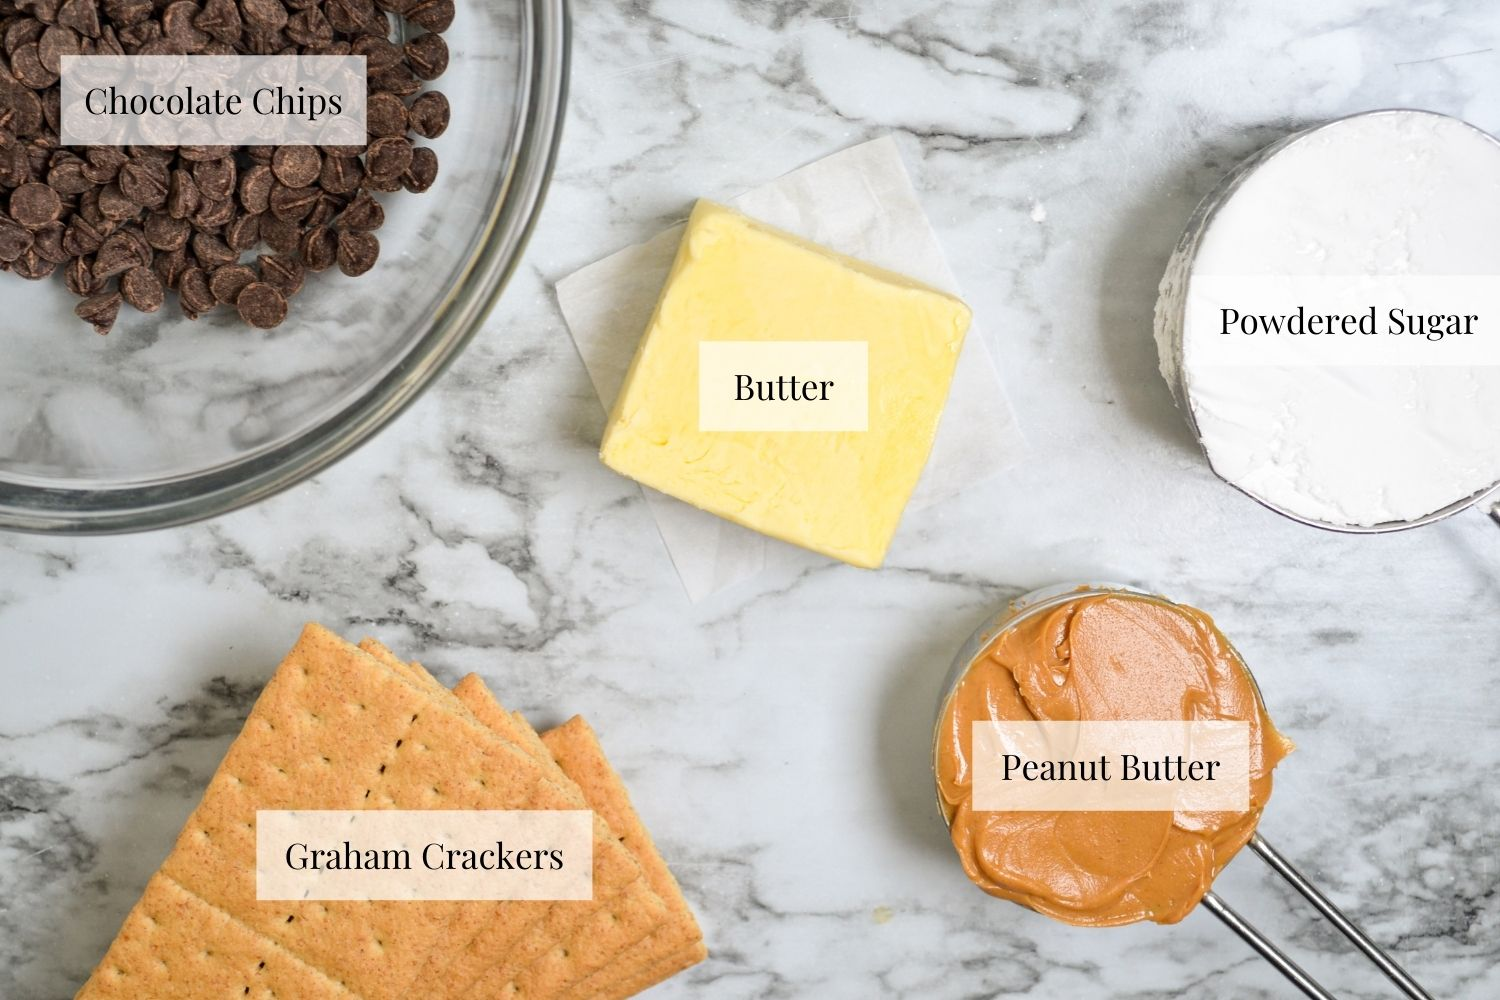 Ingredients needed to make no bake peanut butter bars: graham crackers, peanut butter, butter, powdered sugar, and chocolate chips.